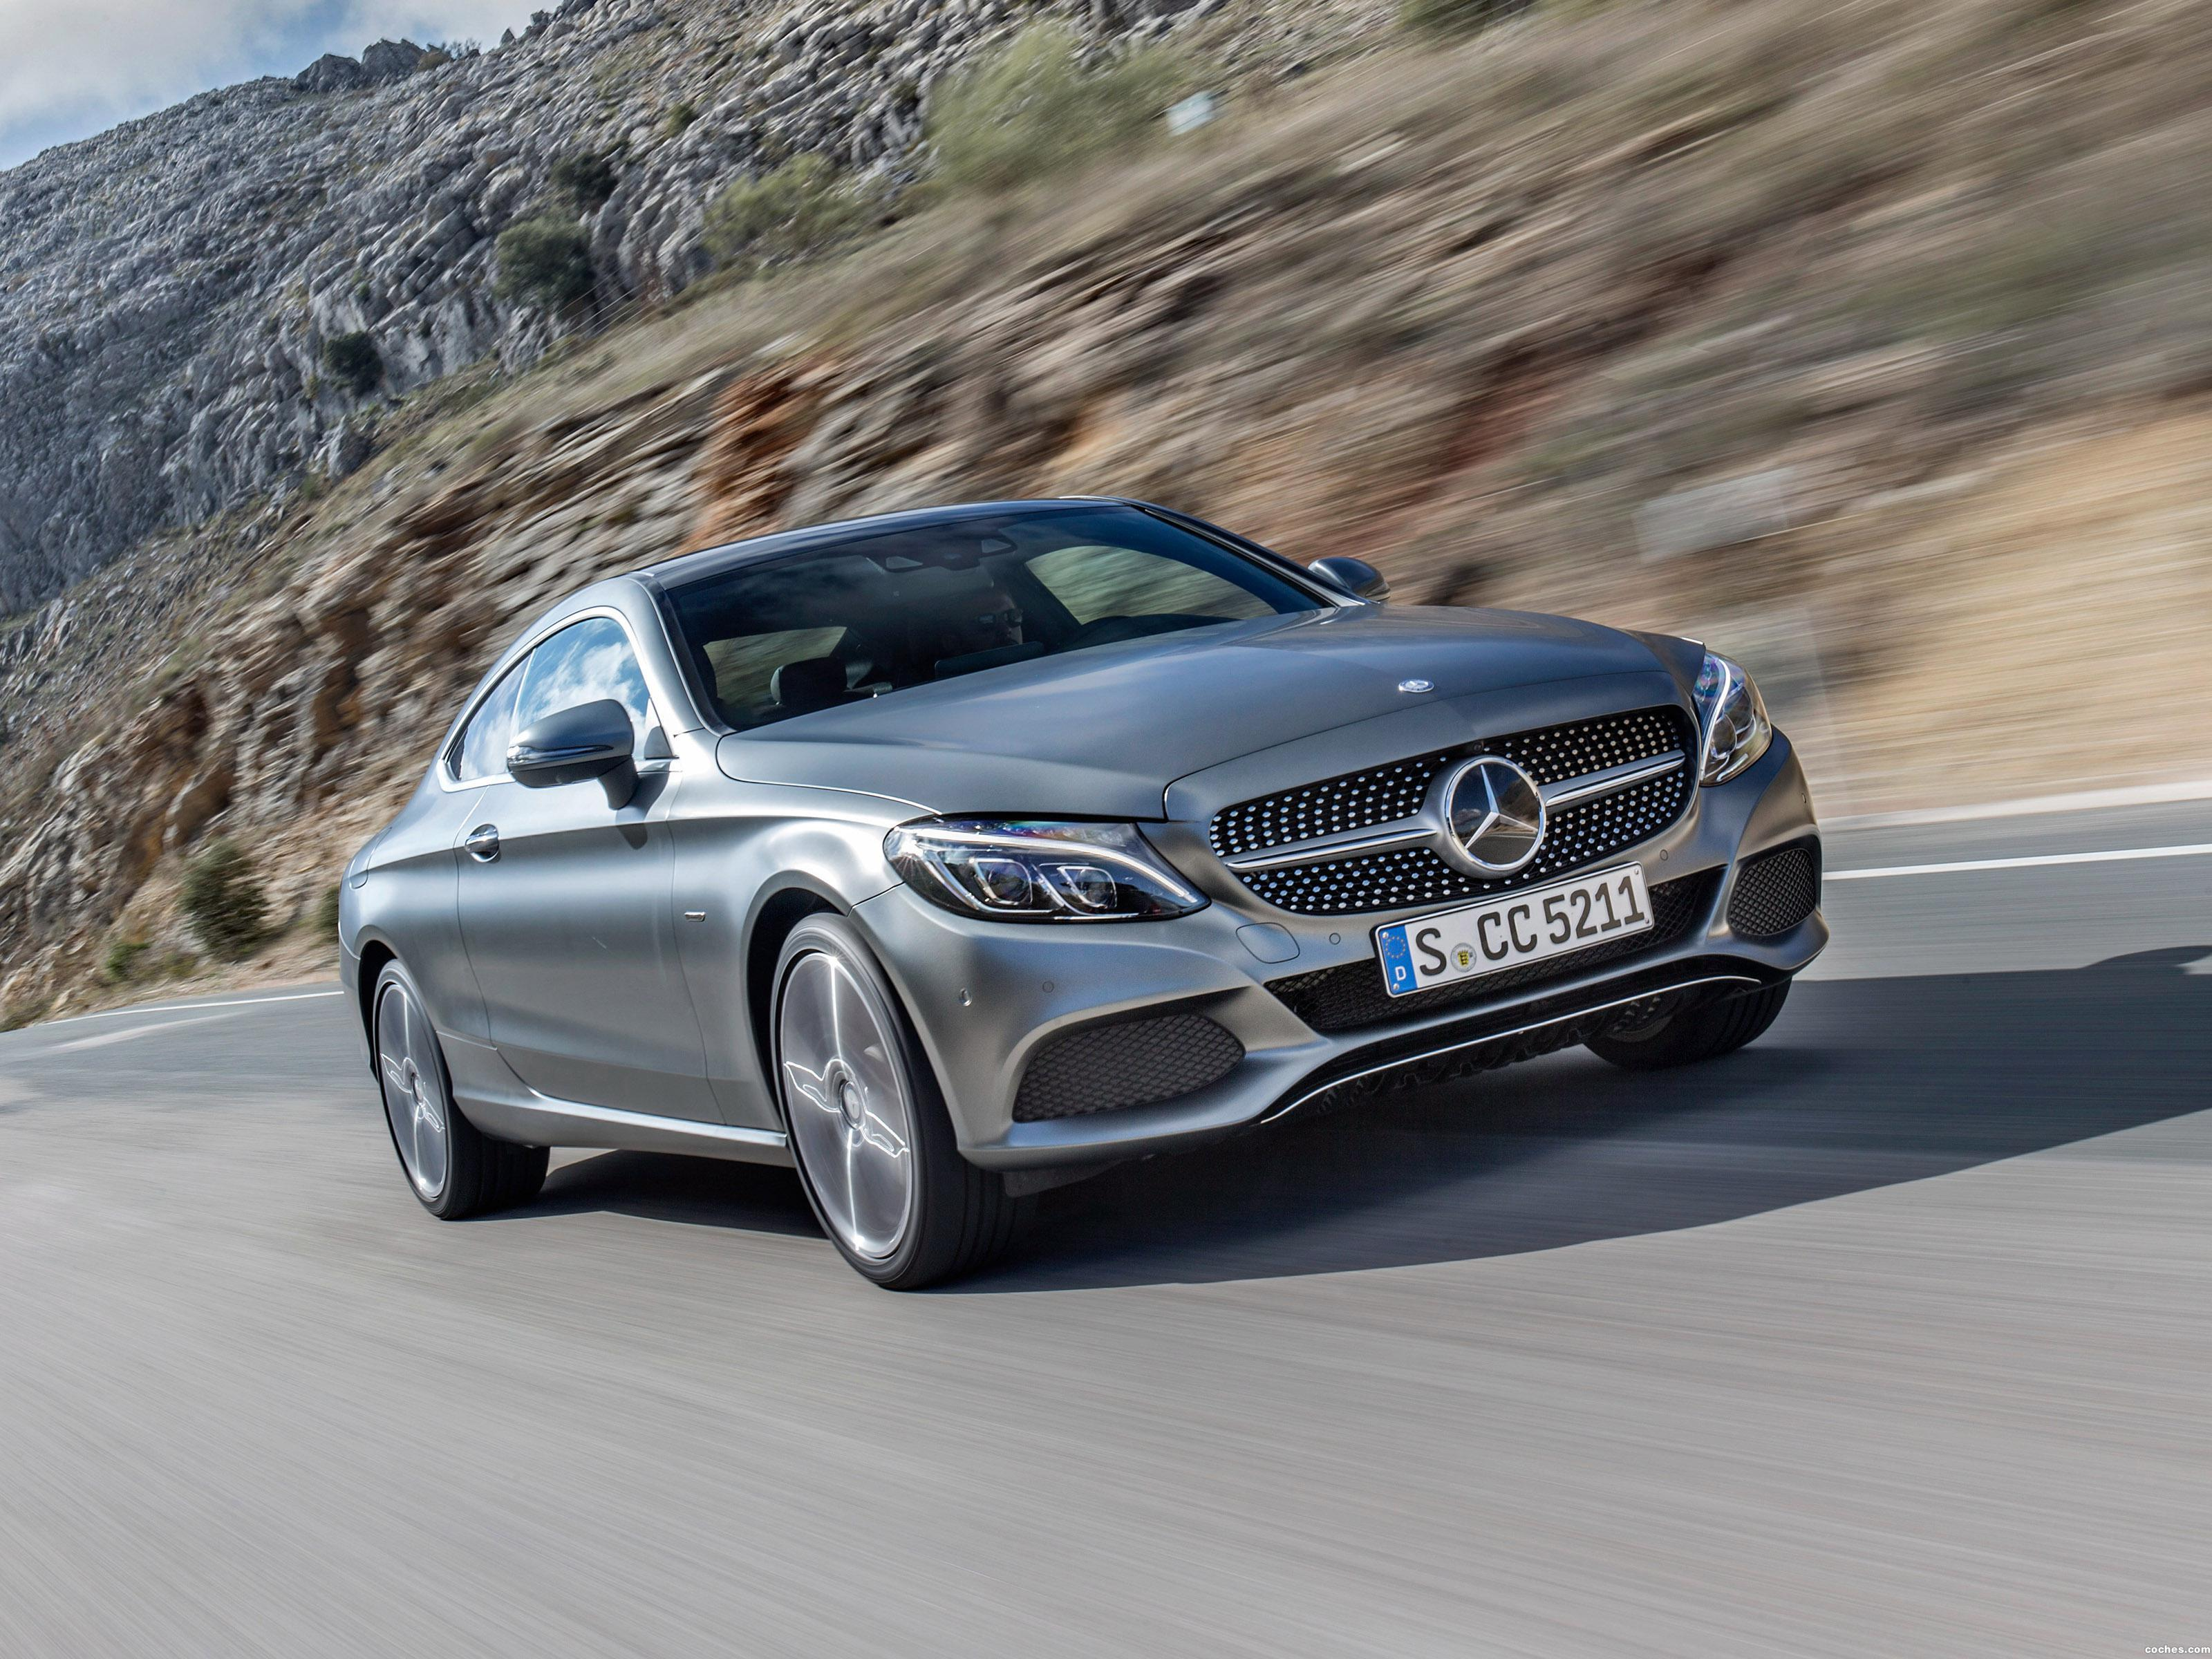 mercedes_c300-coupe-edition-1-c205-2015_r15.jpg